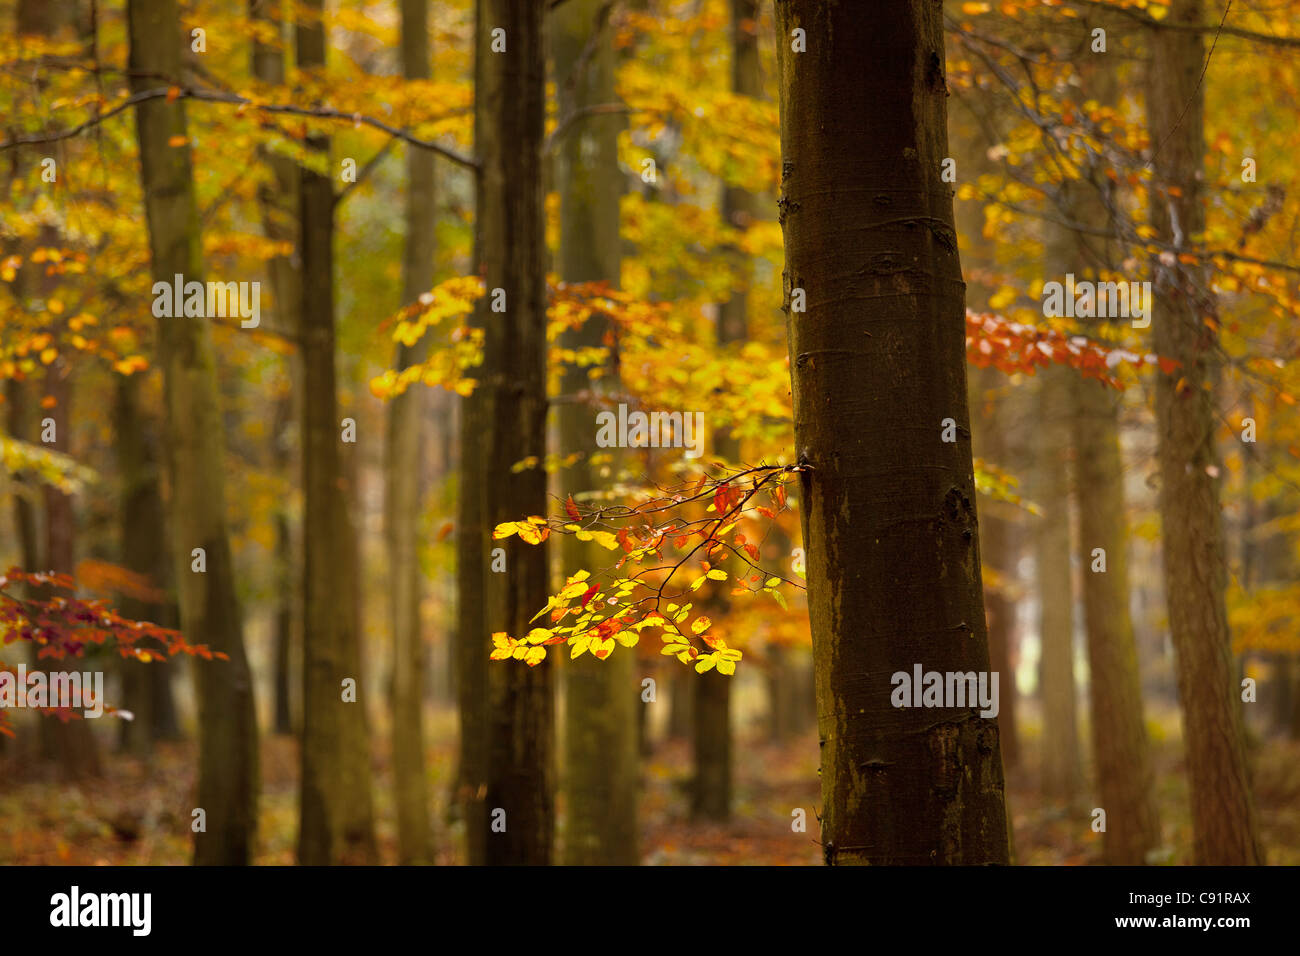 Close-up of leaves and Autumn trees in wood. - Stock Image